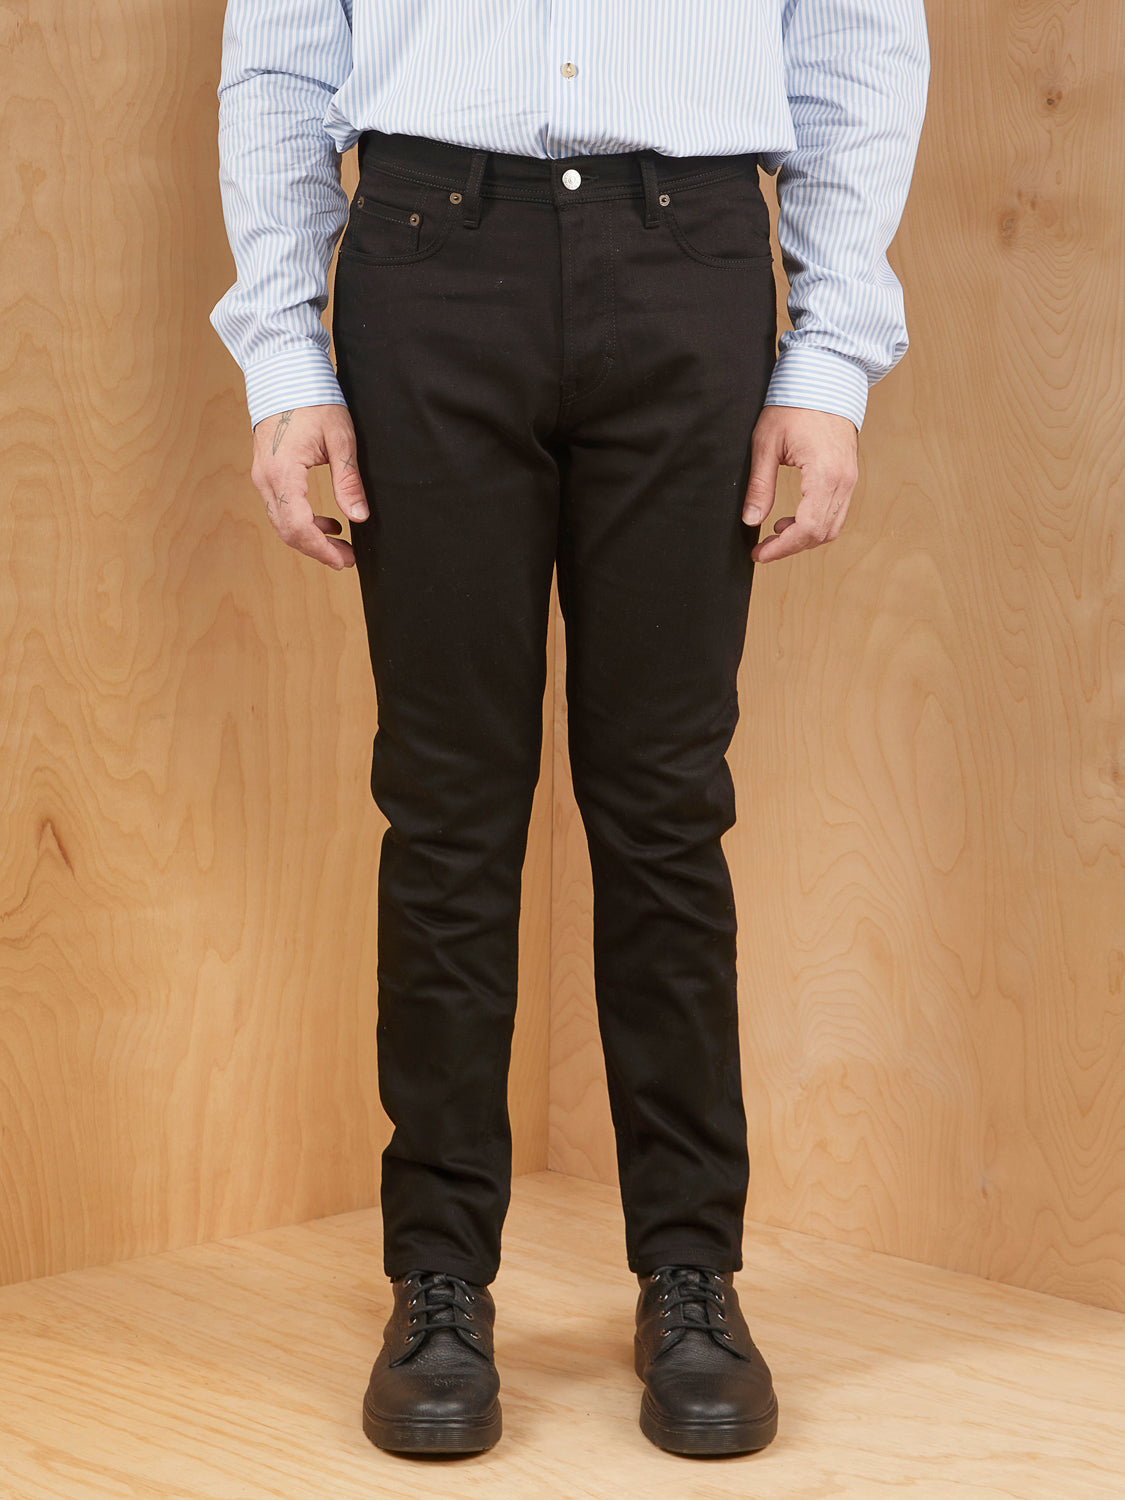 Acne Studios Jeans in River Stay Black